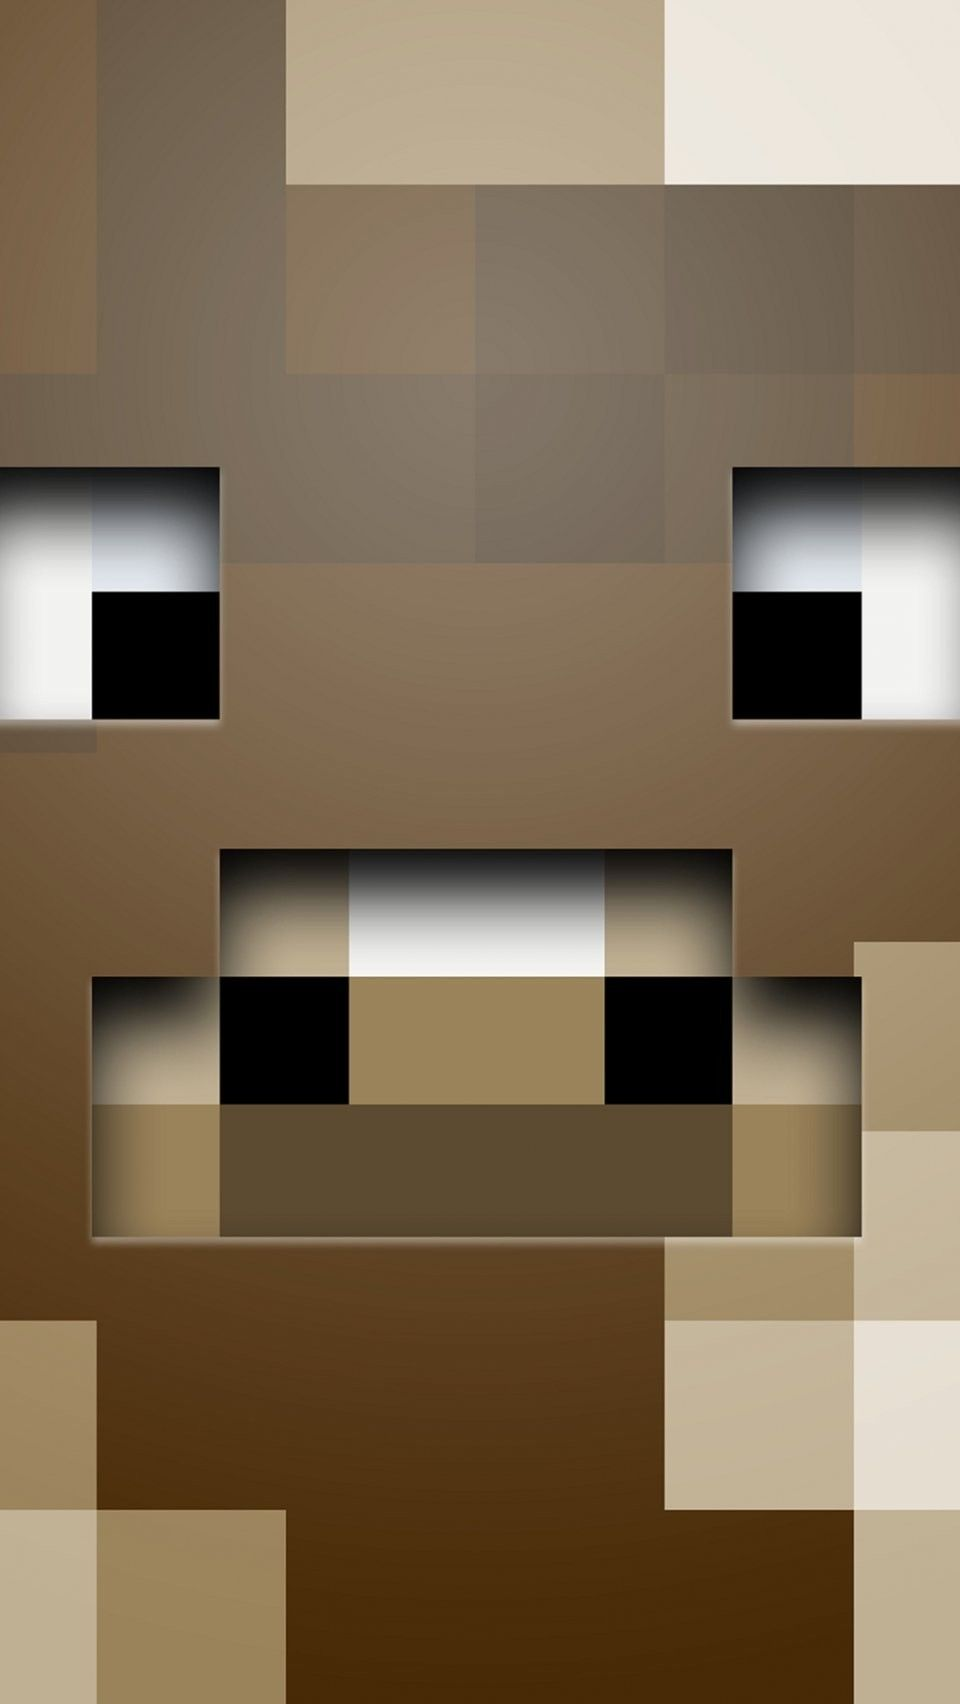 960x1704 68+] Cool Minecraft Wallpapers for iPad on WallpaperSafari